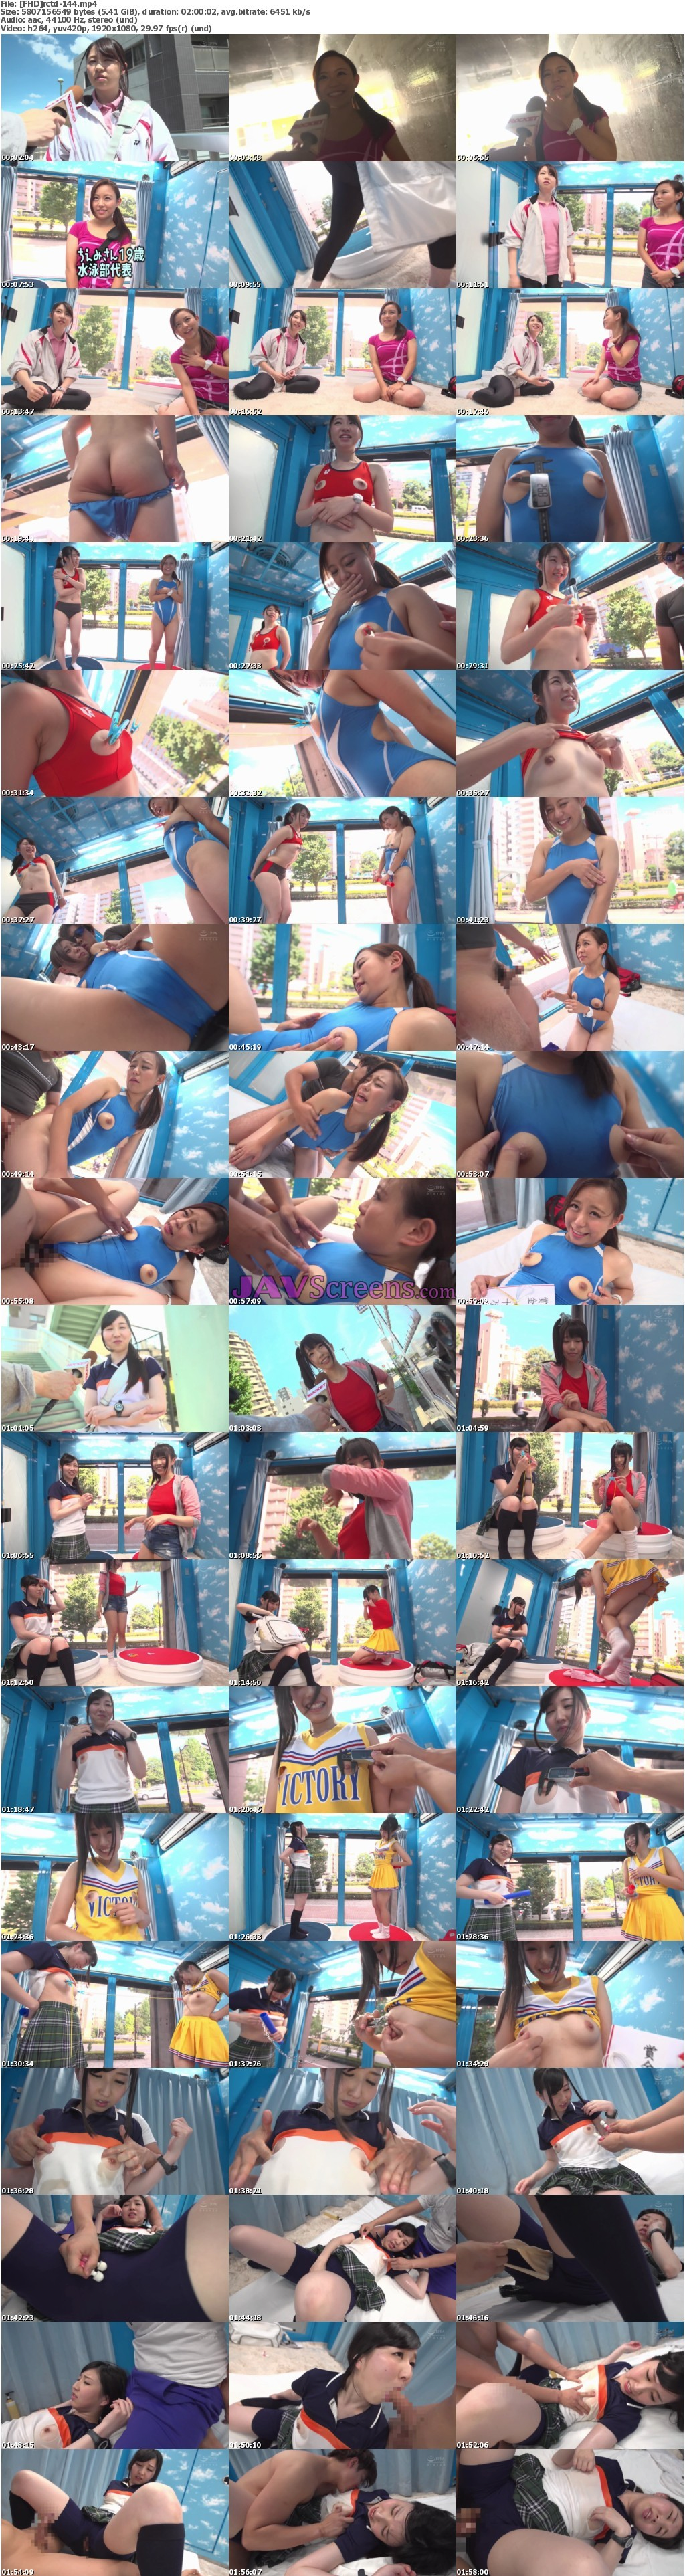 RCTD-144.jpg - JAV Screenshot